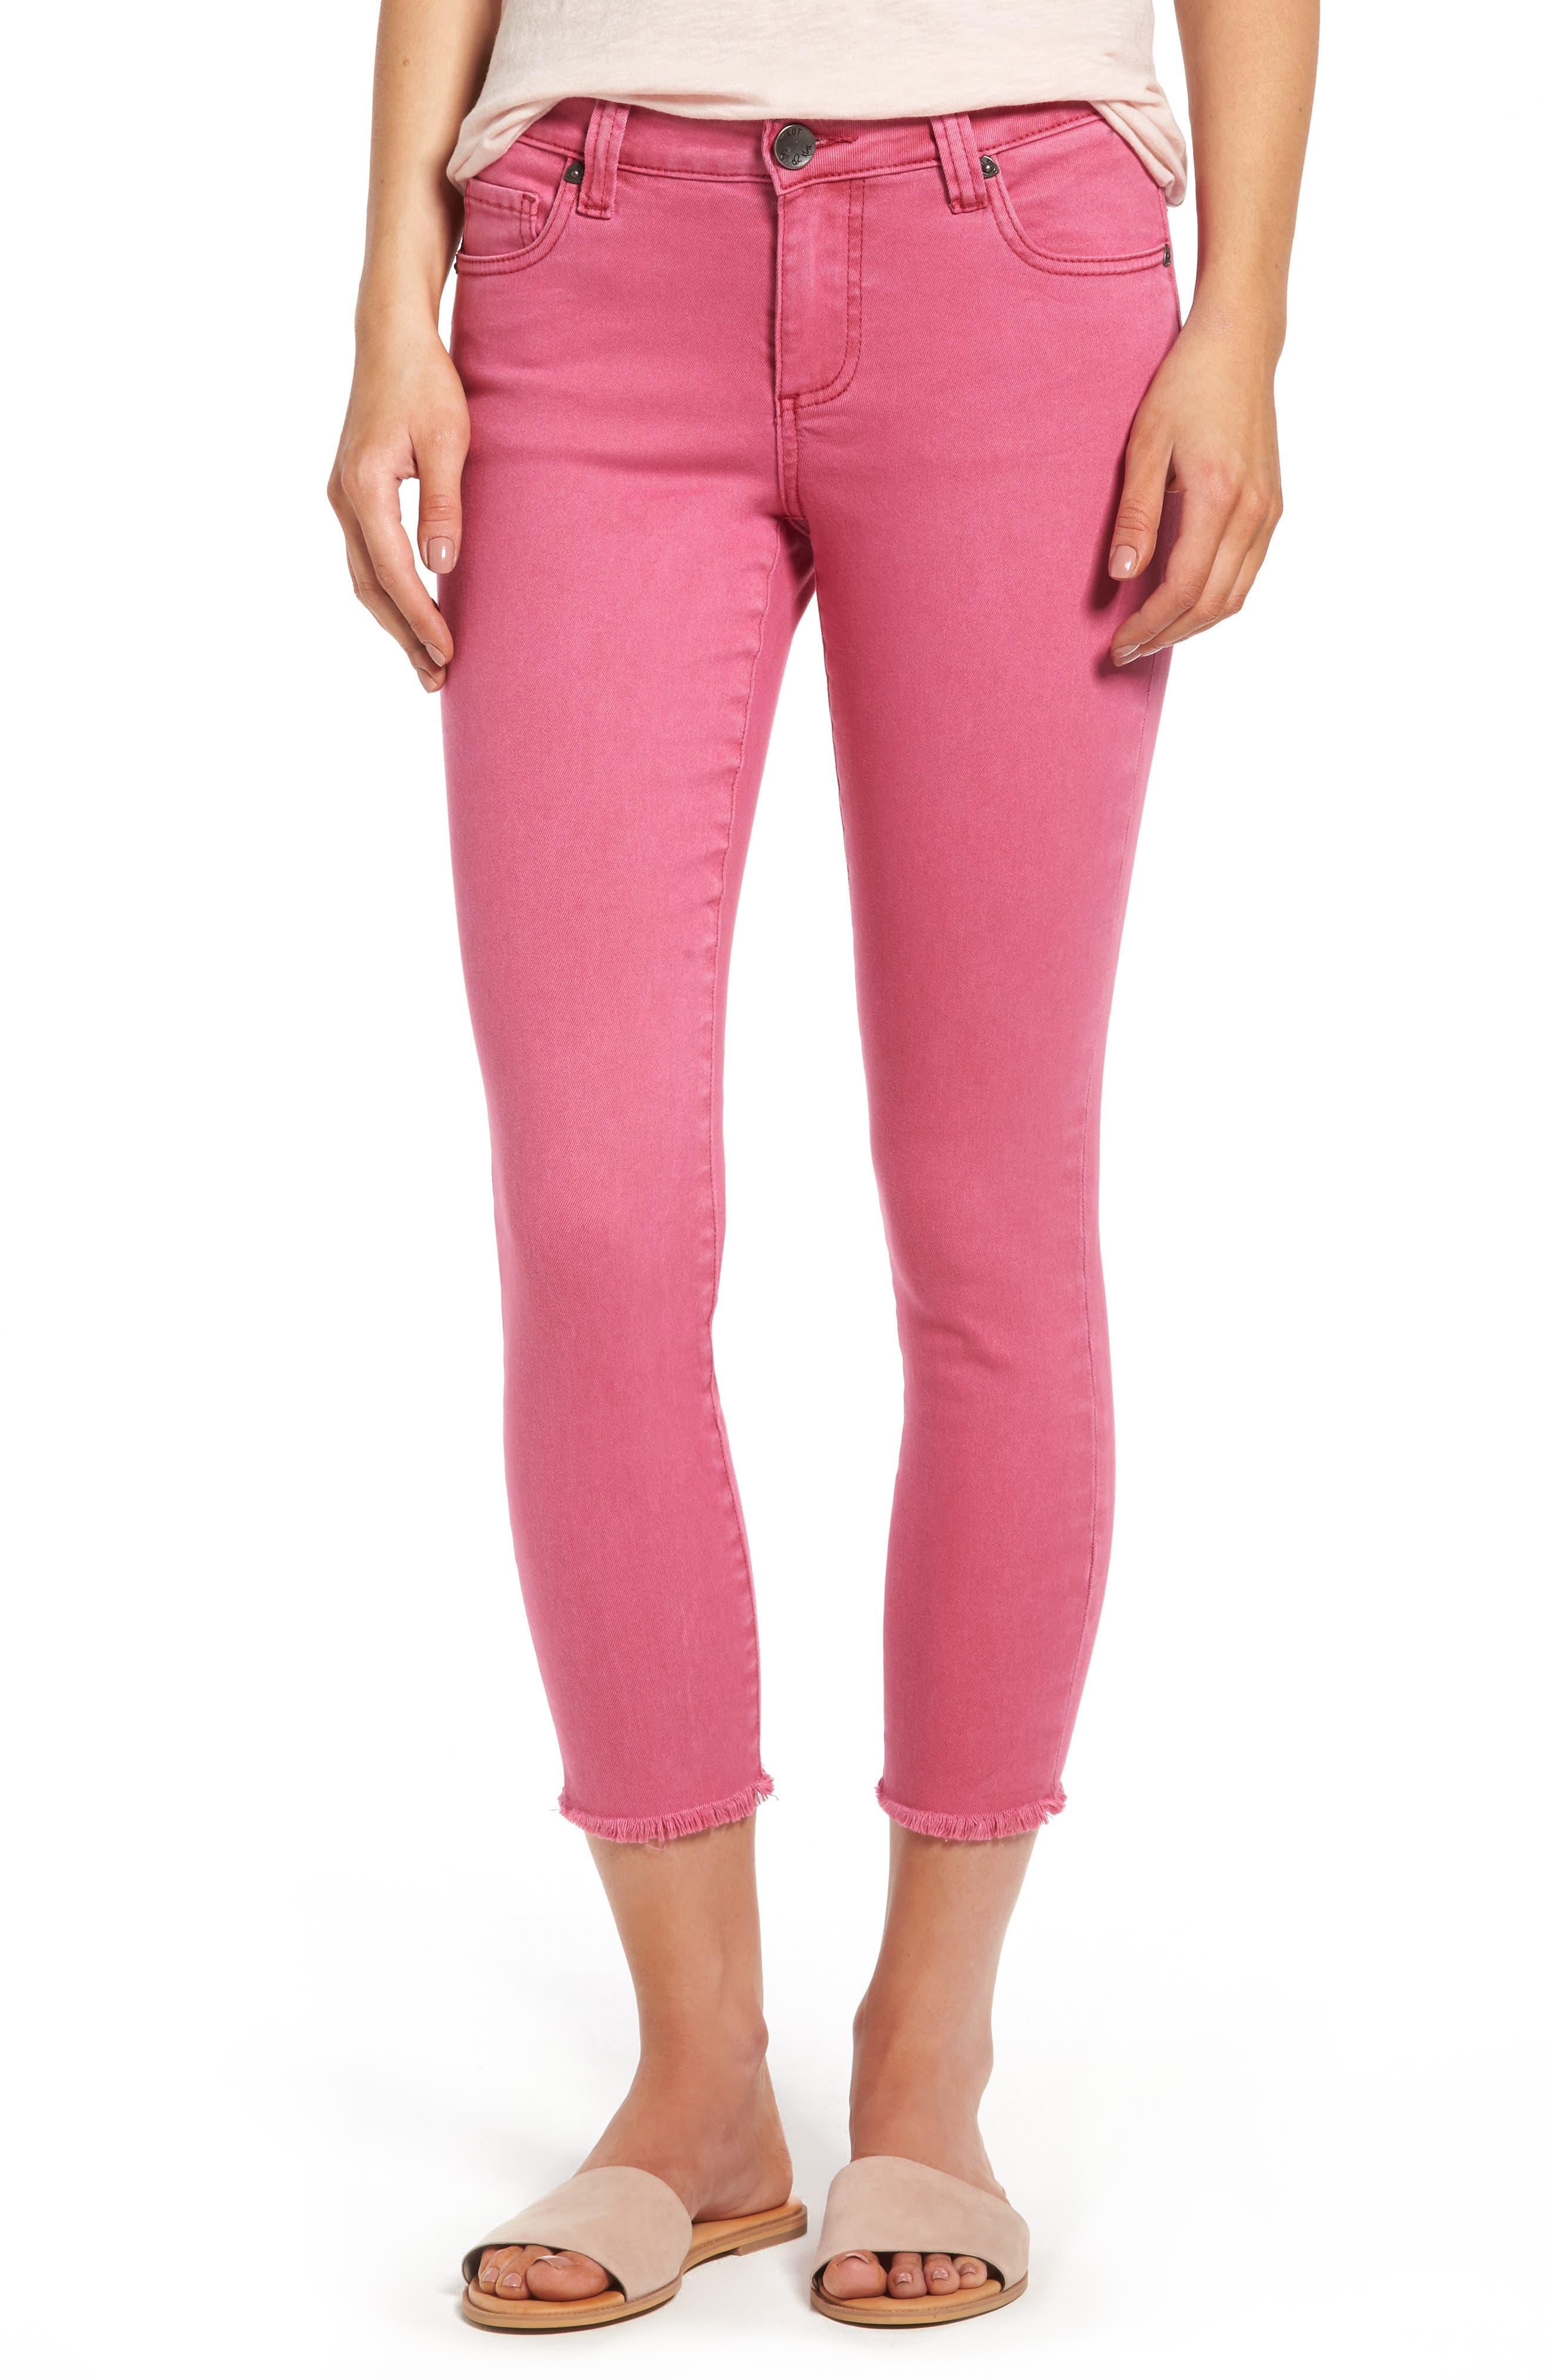 Main Image - KUT from the Kloth Connie Frayed Hem Crop Skinny Jeans (Hot Pink)